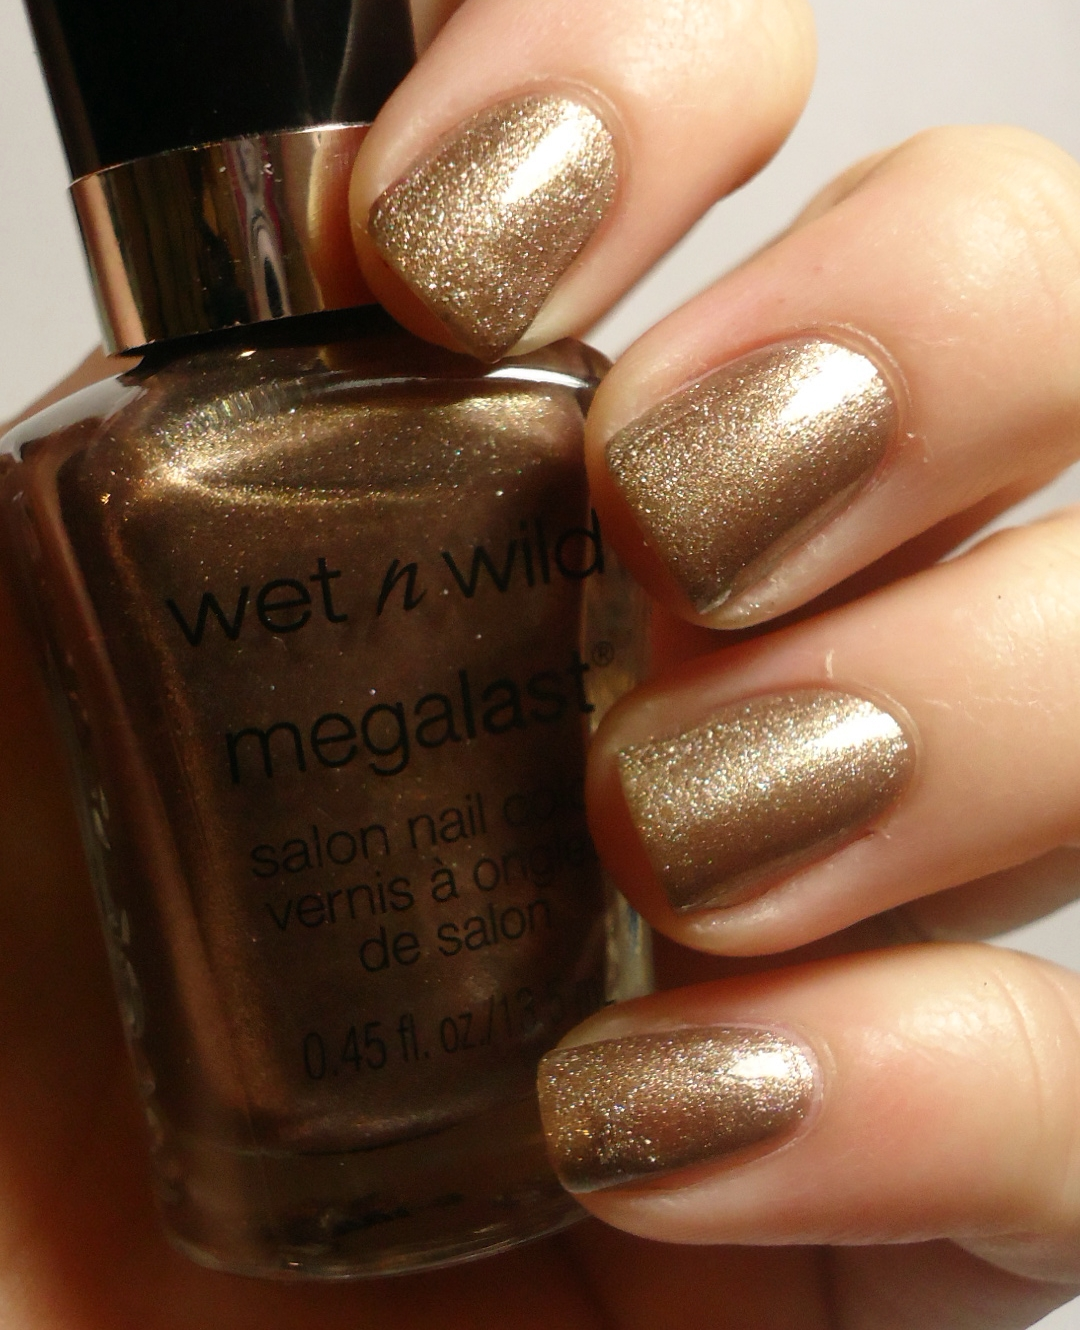 Nail Polish Colors Bronze: BreezyTheNailPolishLover: New Wet N Wild Megalast Polishes